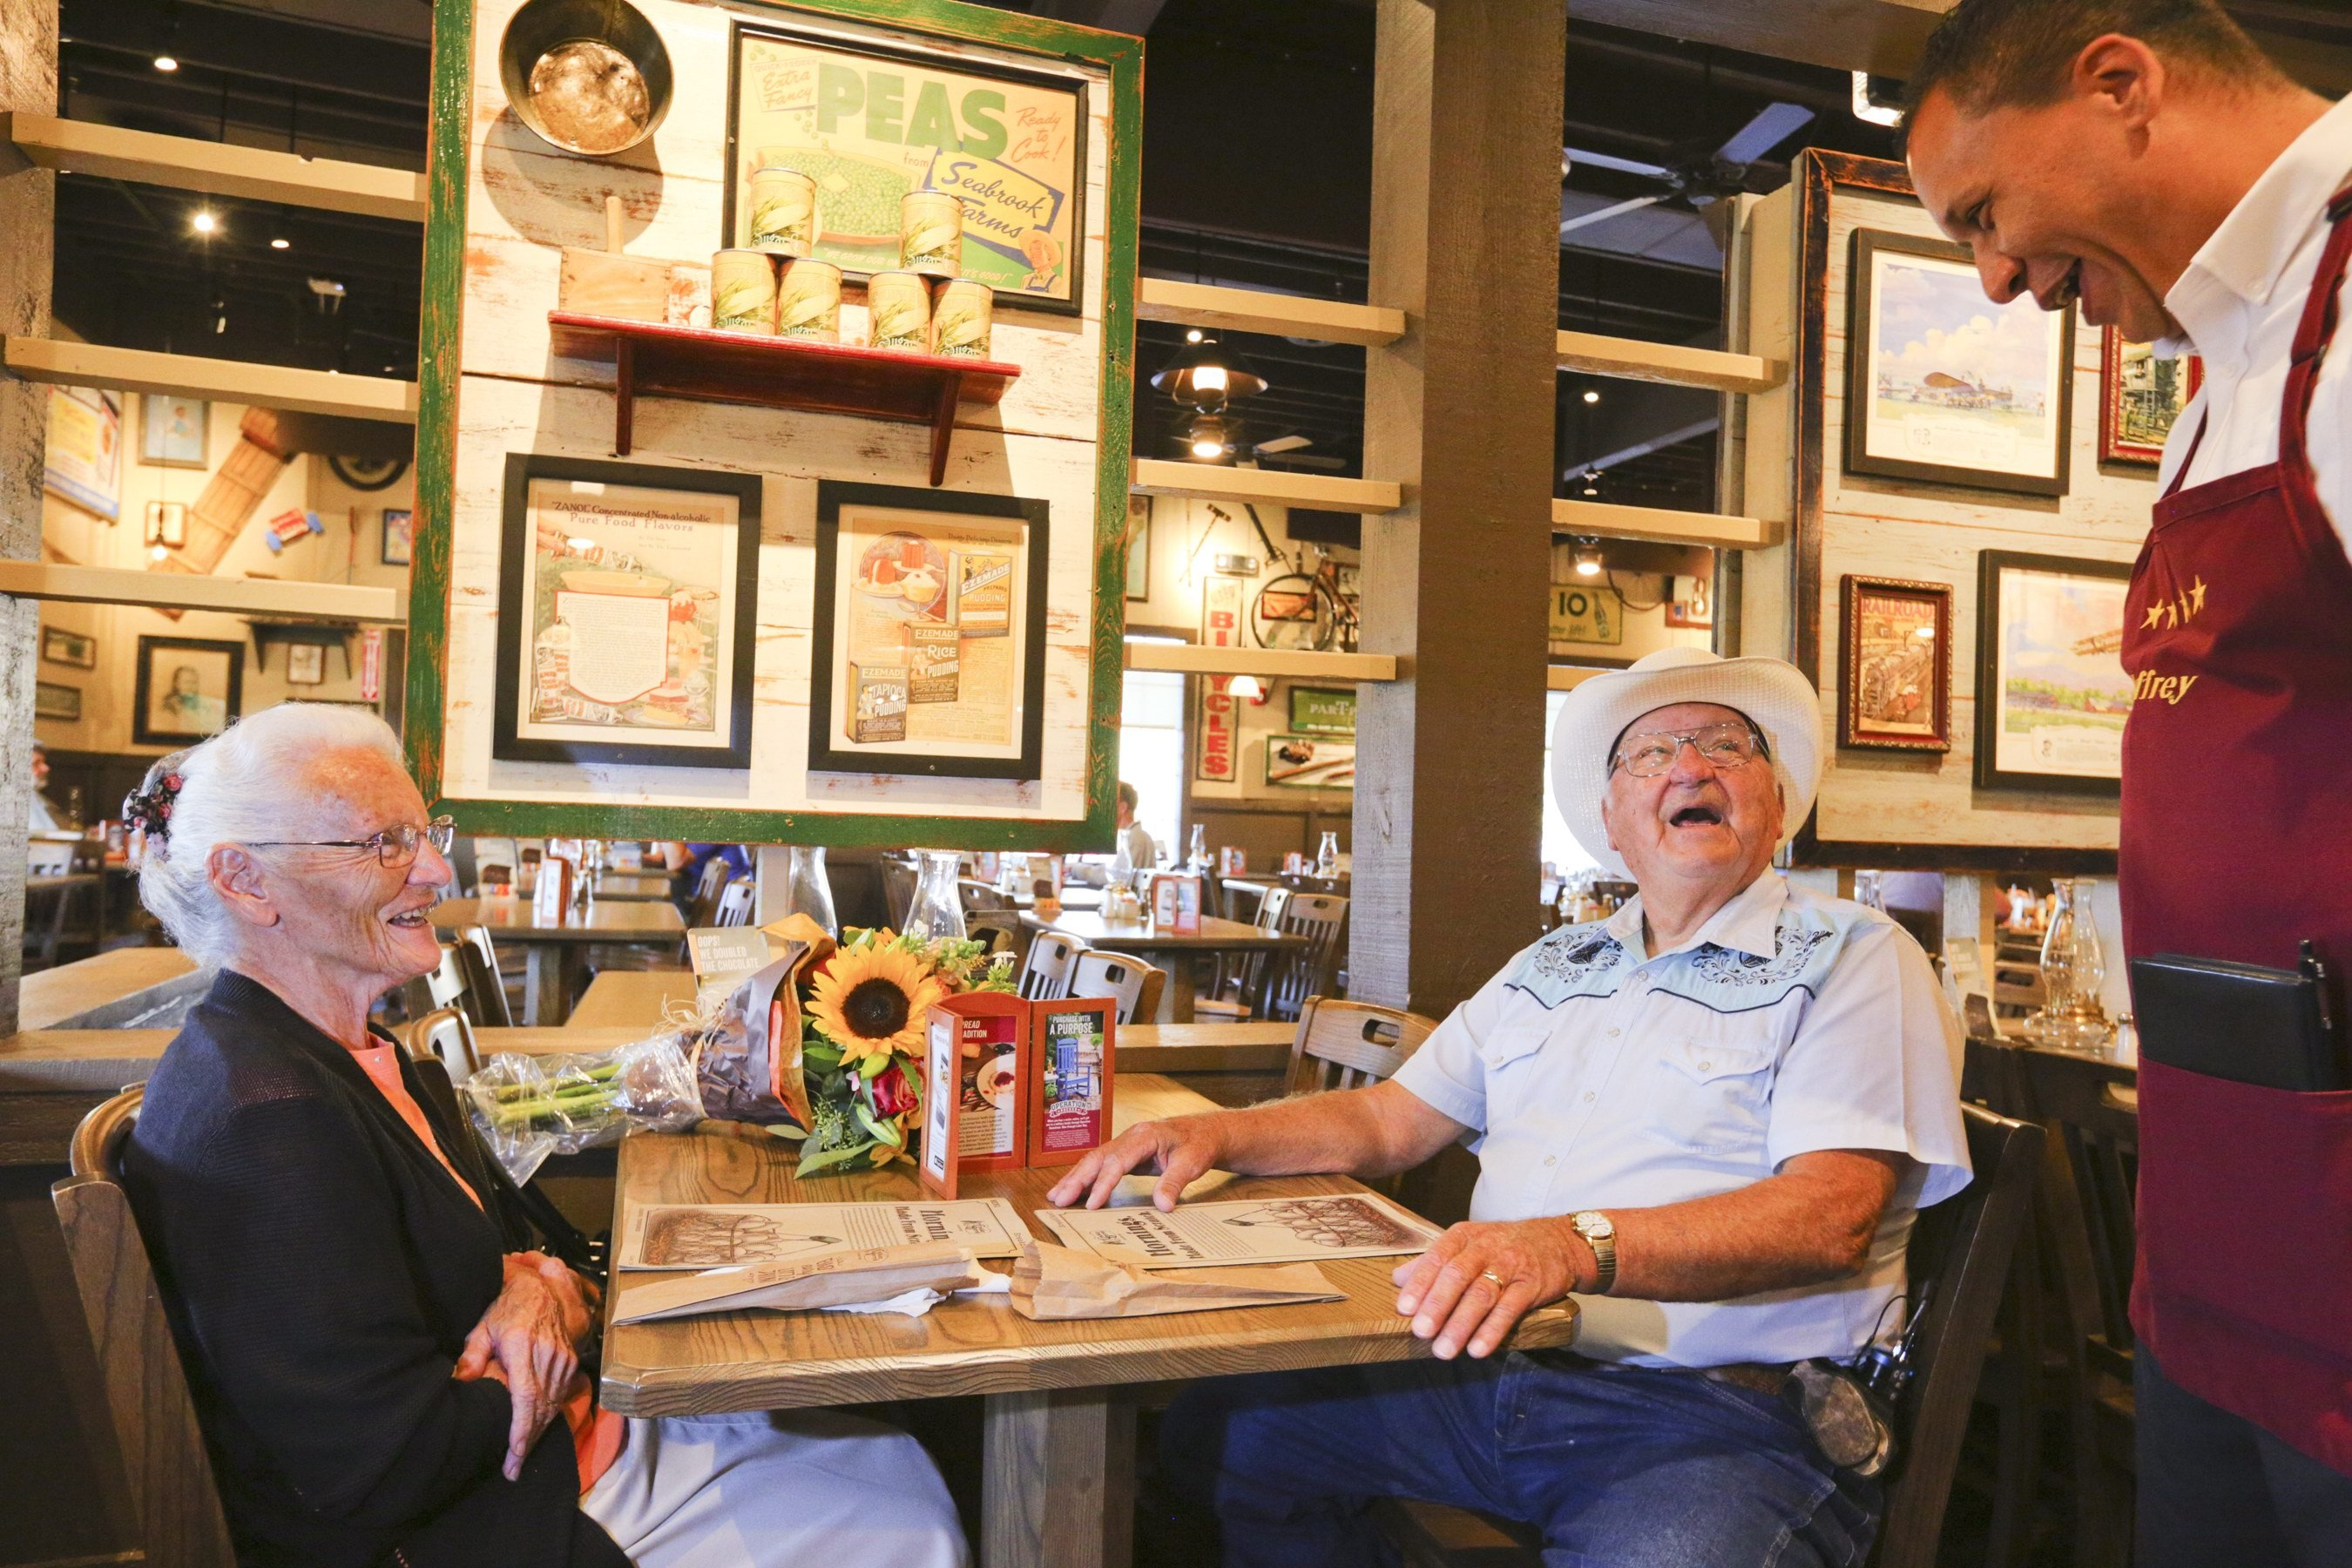 IN couple completes quest to visit every Cracker Barrel in the US